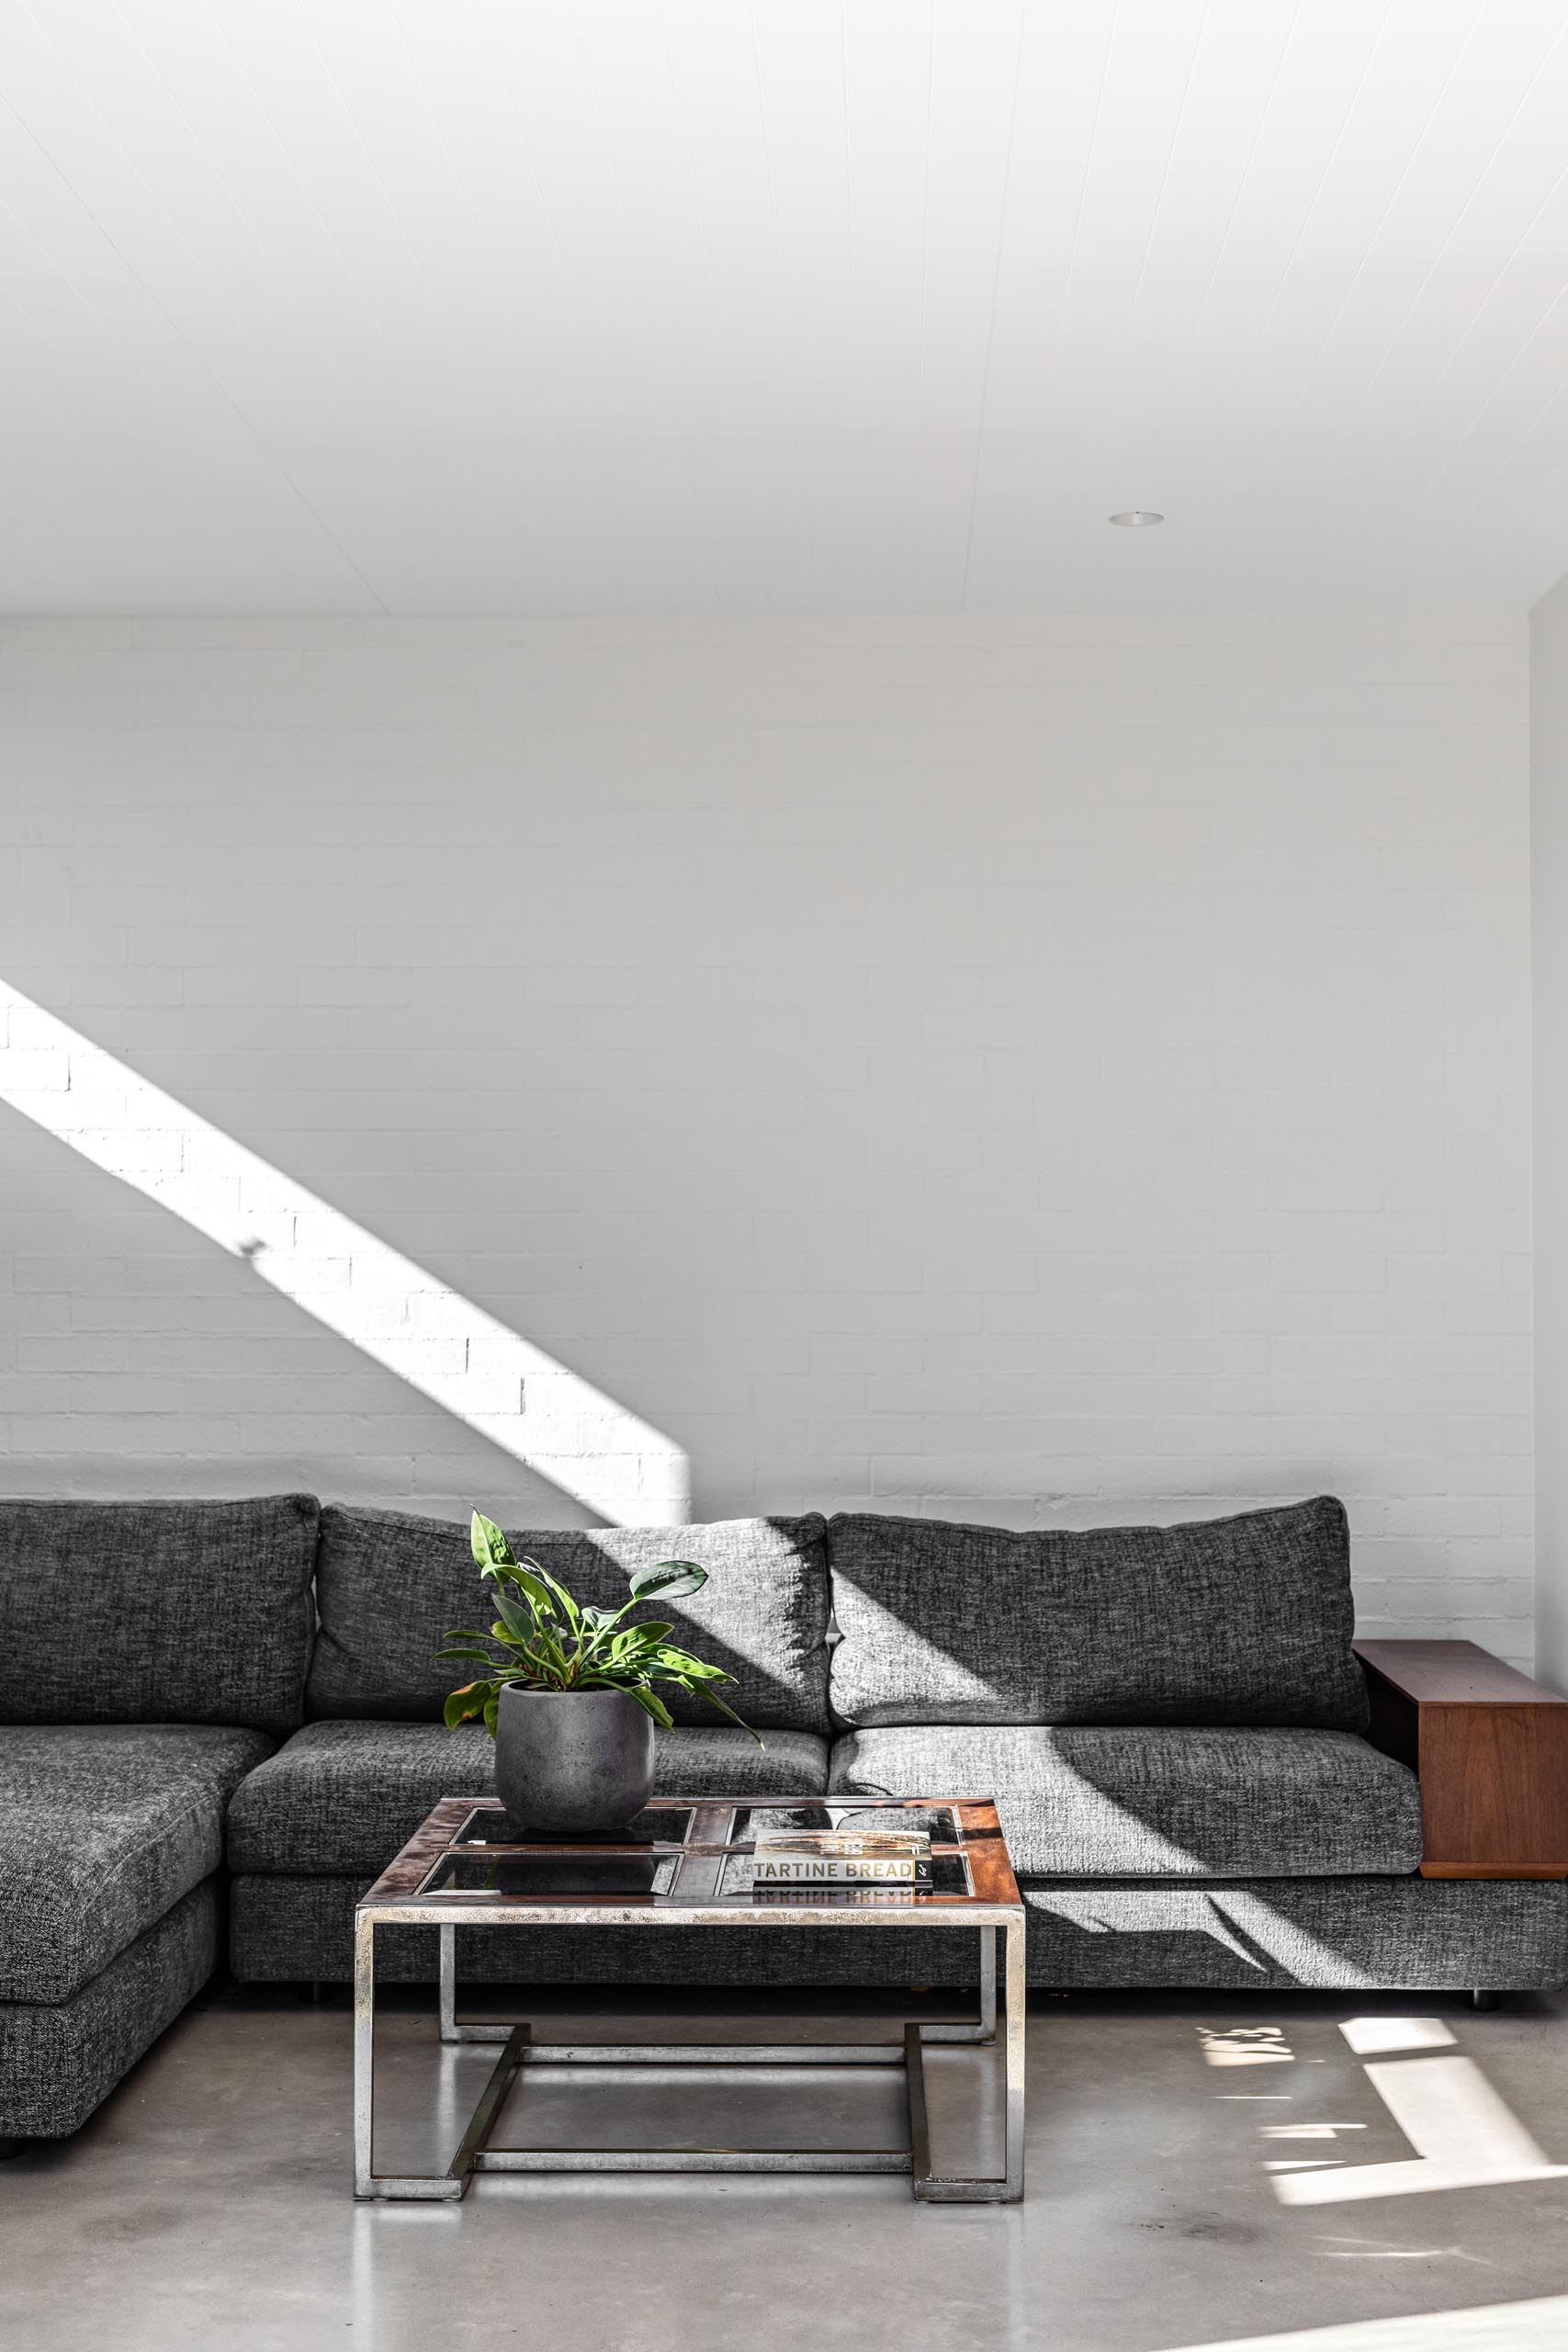 A textured white wall provides a backdrop for the gray couch with wood accents.